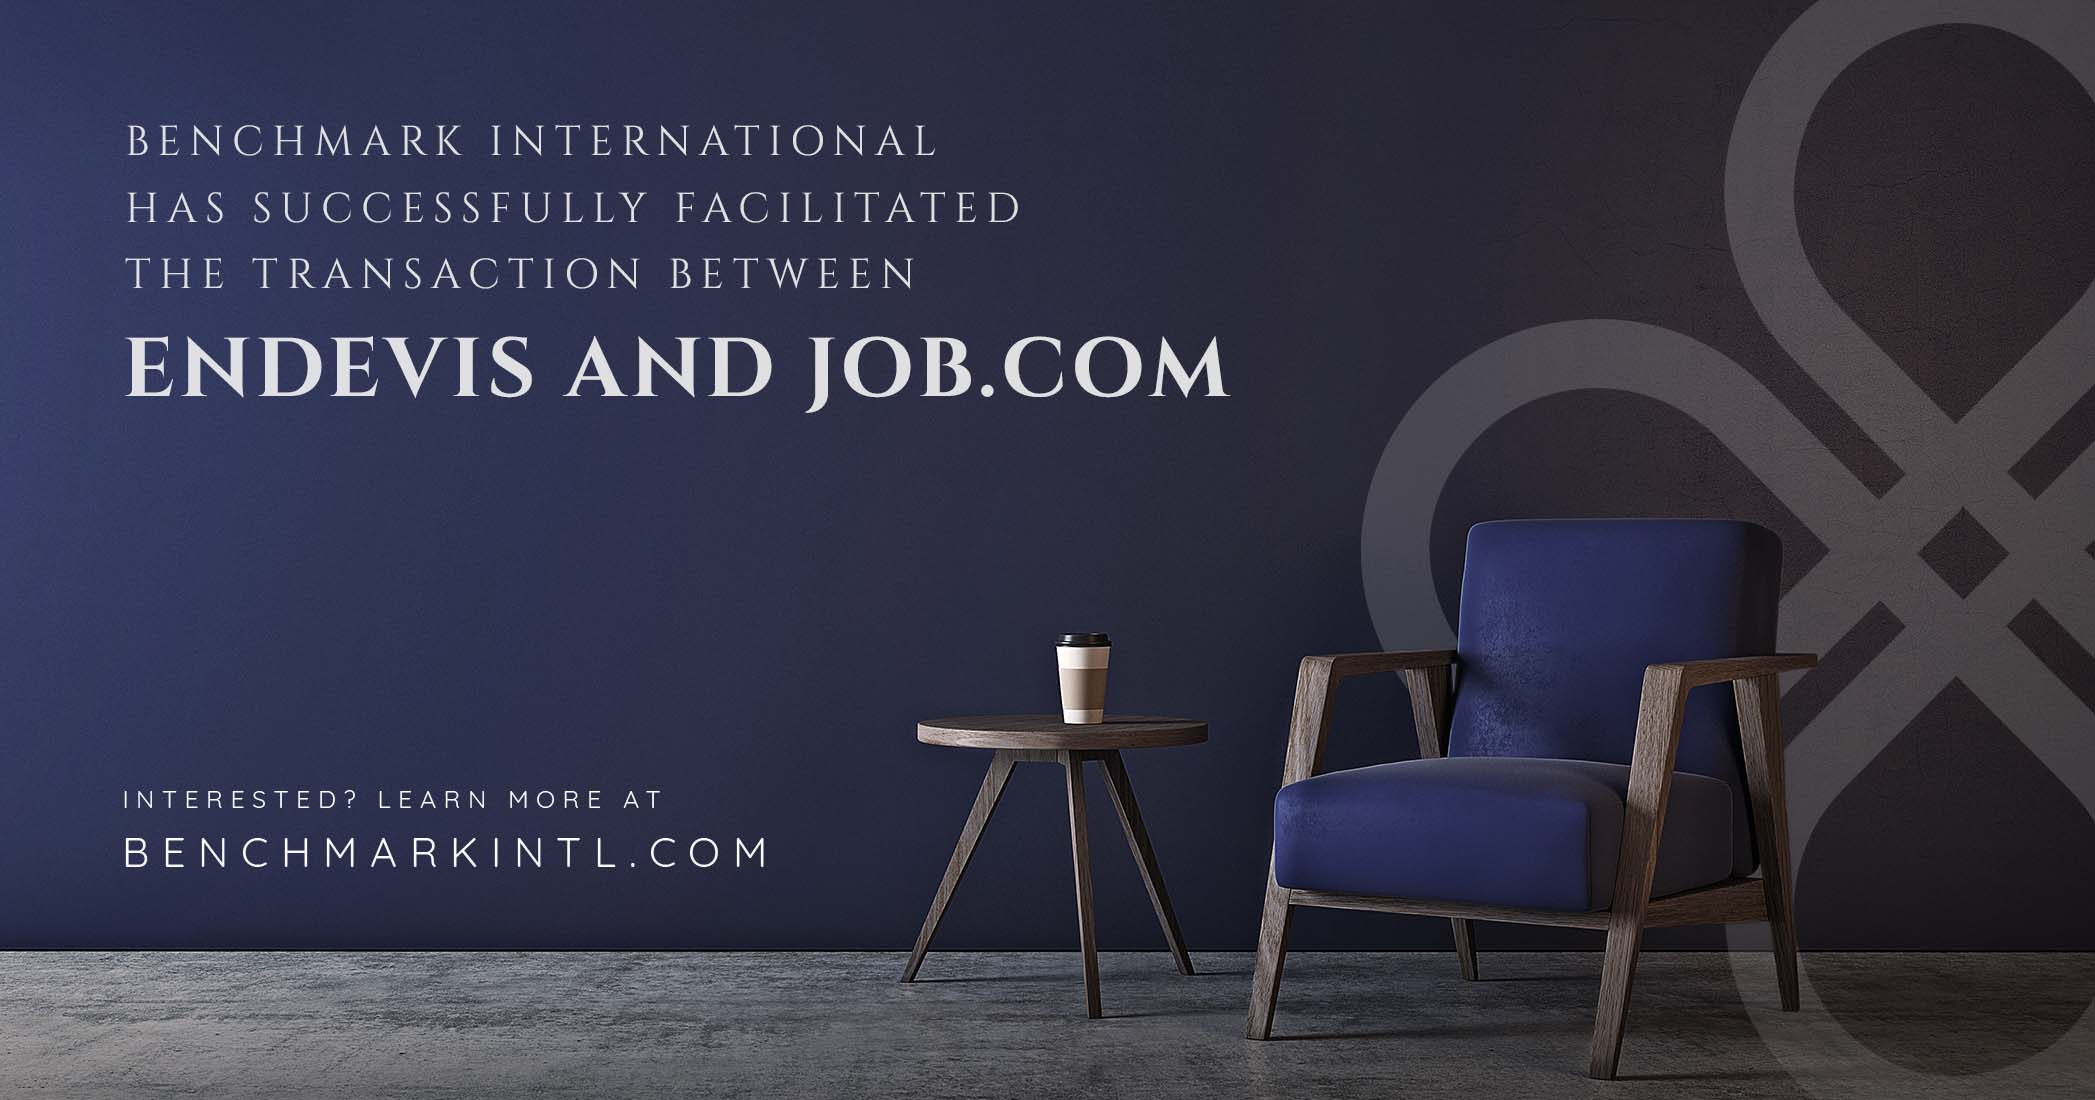 Benchmark International Successfully Facilitated the Transaction Between Endevis and Job.com